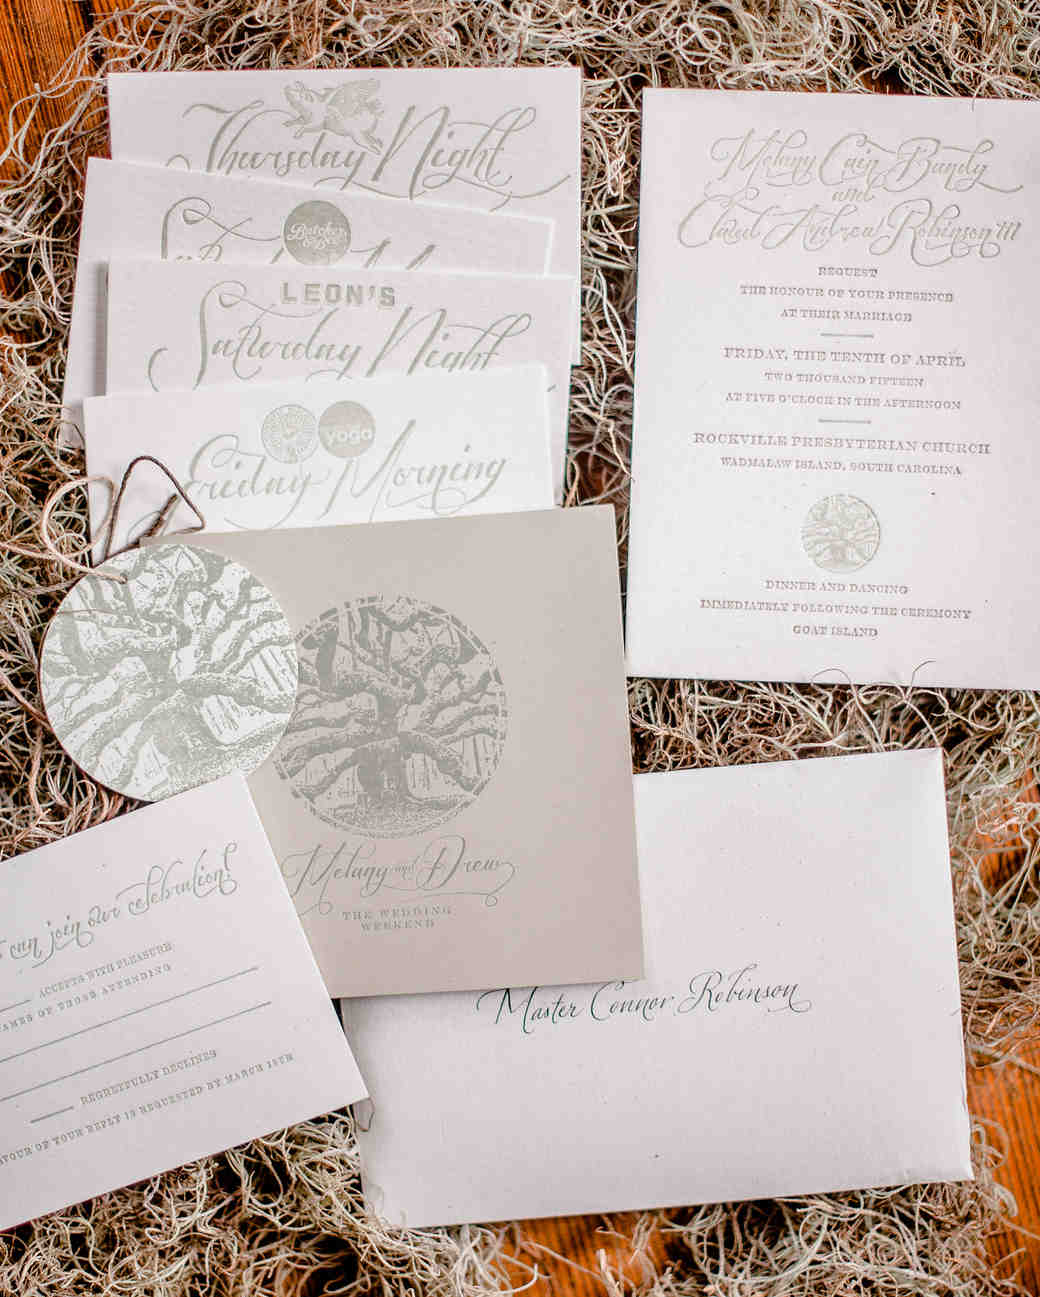 melany-drew-wedding-stationery-007-s112184-0915.jpg